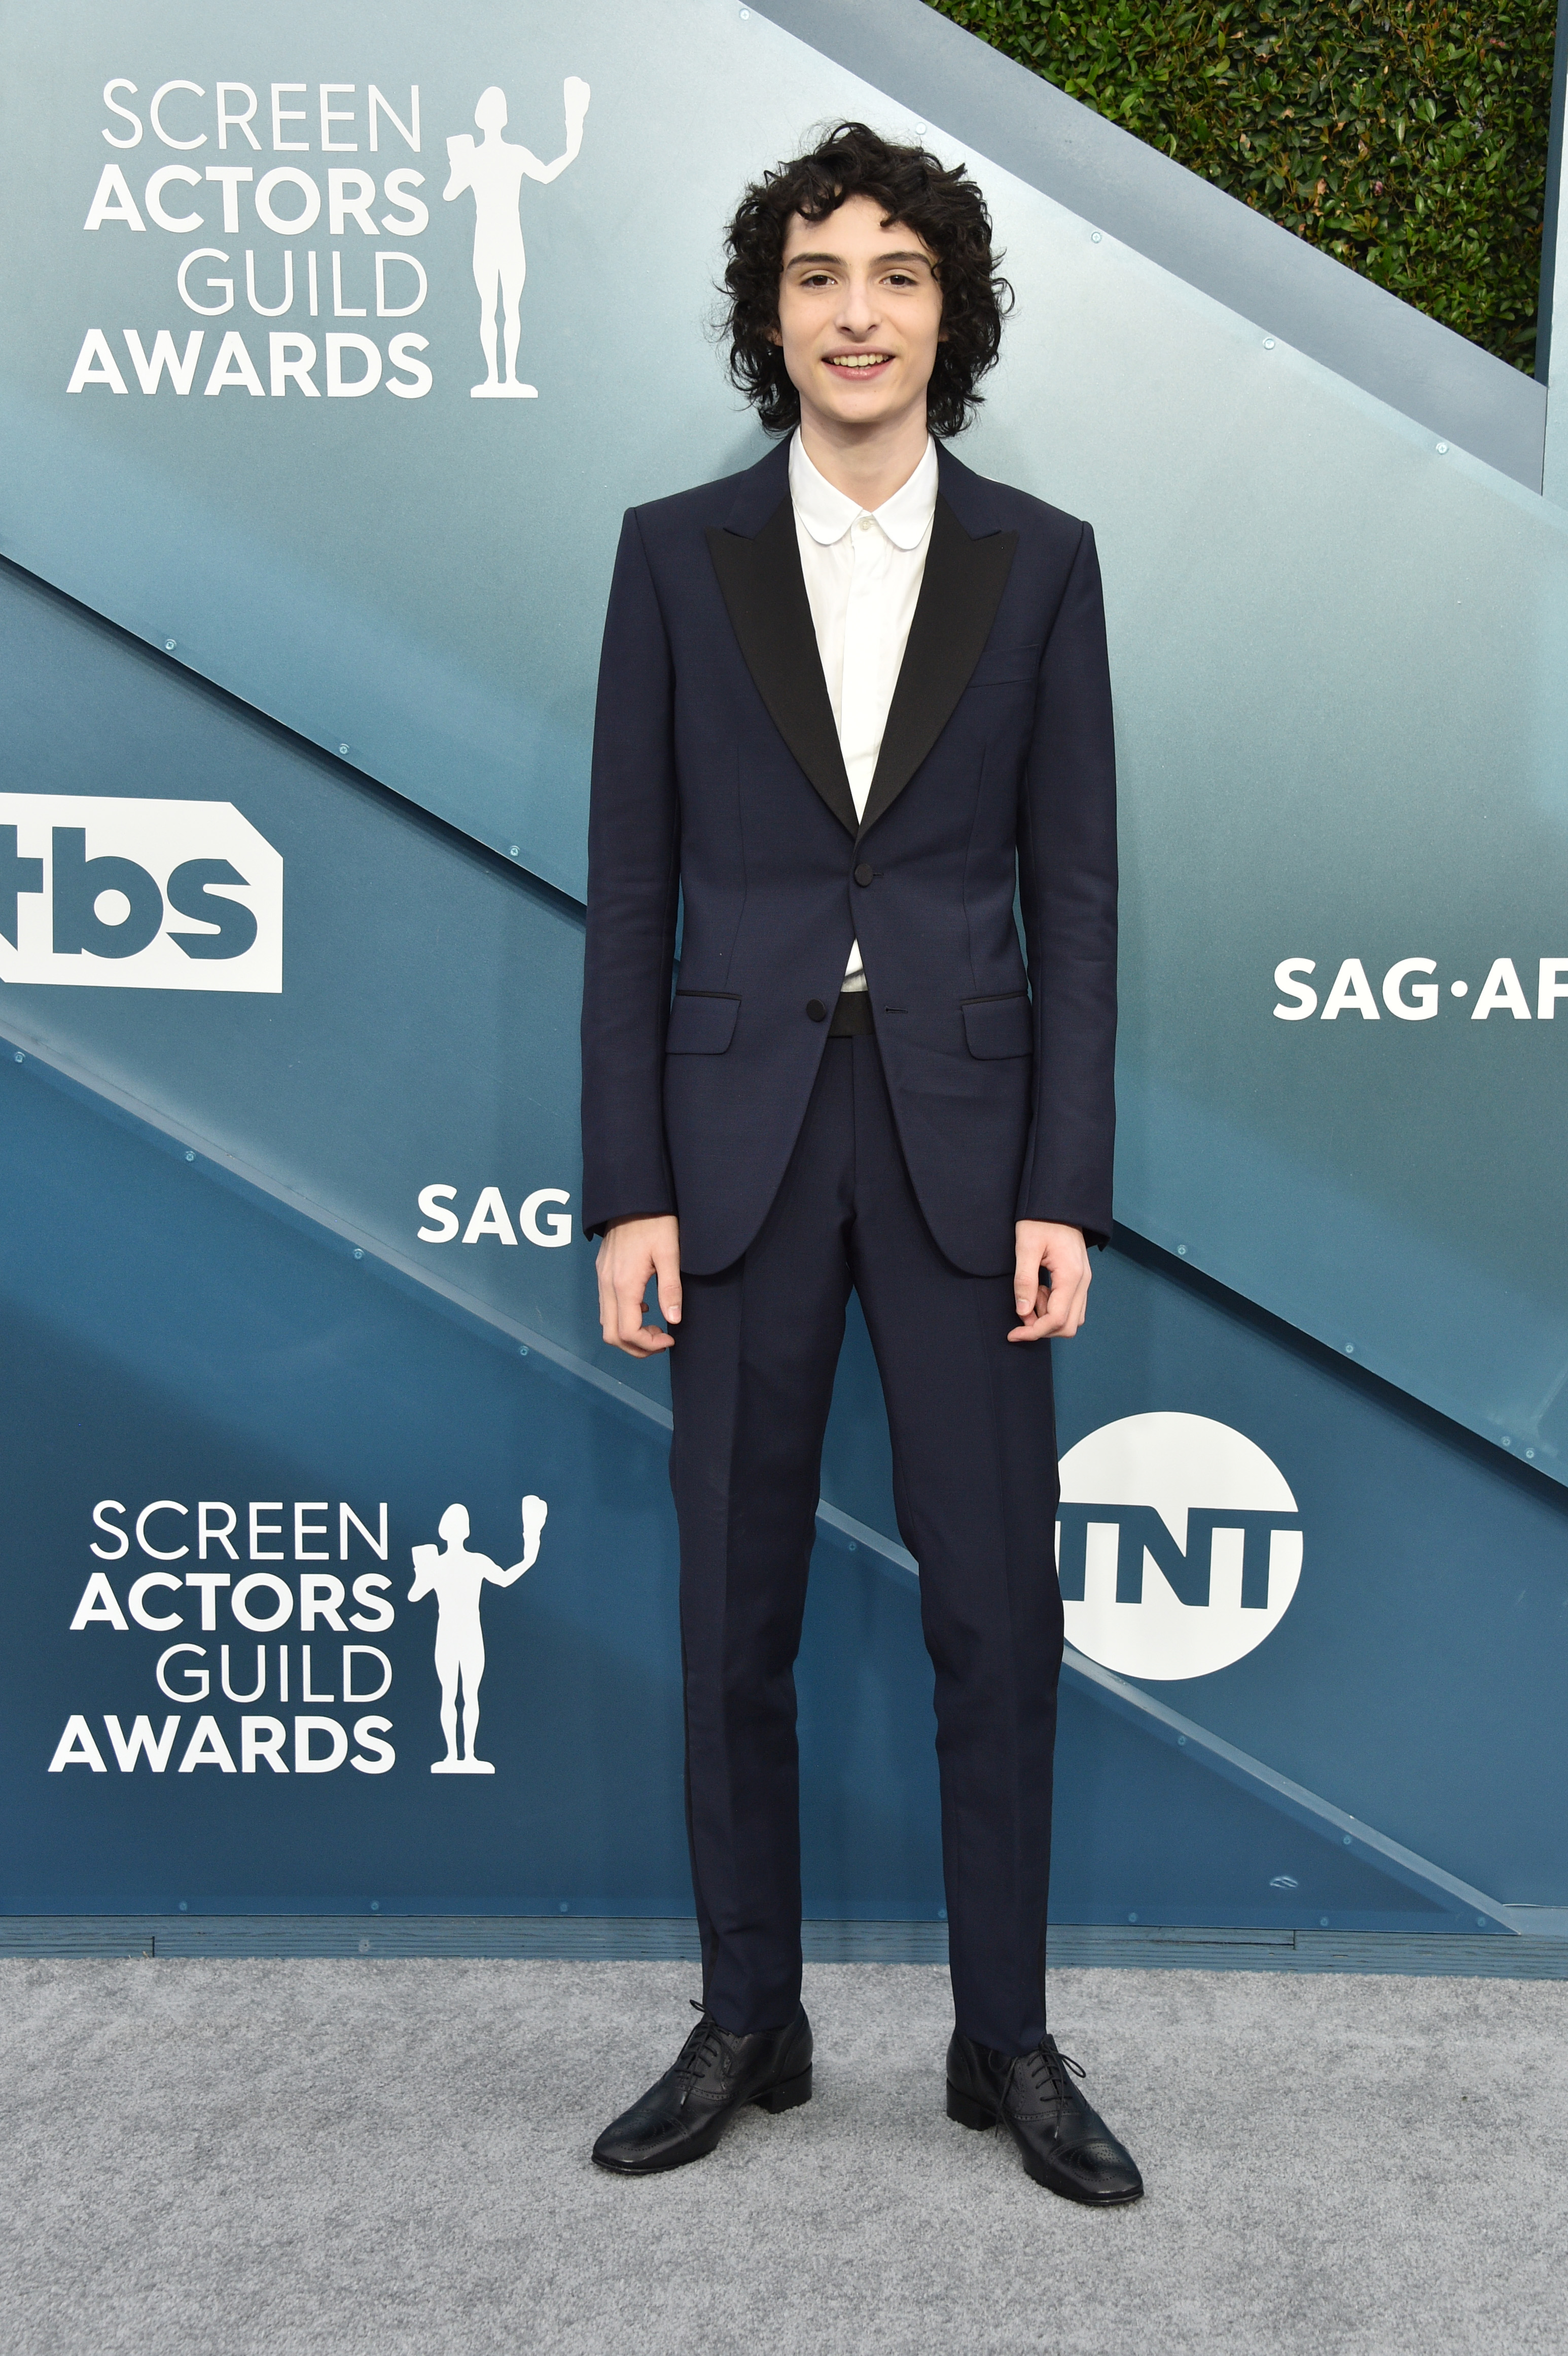 LOS ANGELES, CALIFORNIA - JANUARY 19: Finn Wolfhard attends the 26th Annual Screen ActorsGuild Awards at The Shrine Auditorium on January 19, 2020 in Los Angeles, California. 721430 (Photo by Gregg DeGuire/Getty Images for Turner)